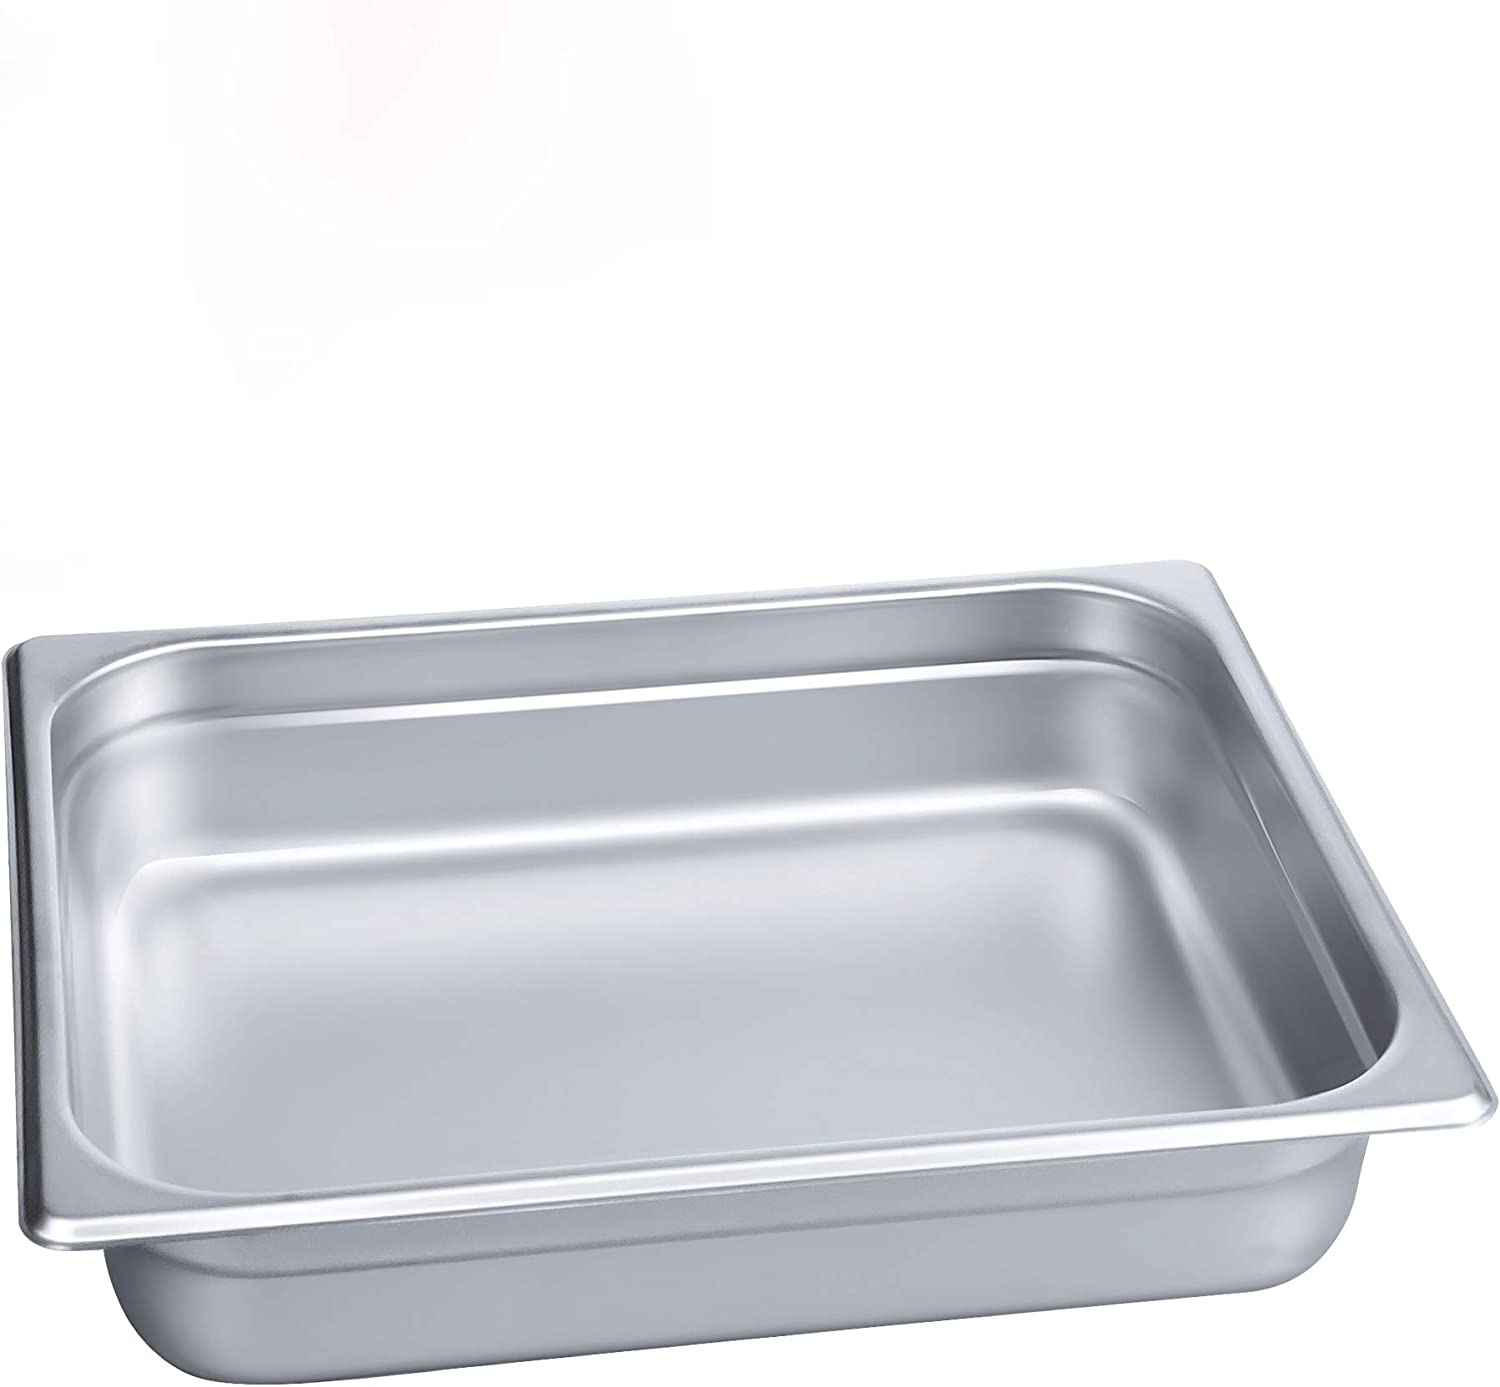 """2 1/2"""" Deep Steam Table Pan Half Size,Kitma 4 Quart Stainless Steel Anti-Jam Standard Weight Hotel GN Food Pans - NSF (12.8""""L x 10.43""""W) - 12 Pack"""